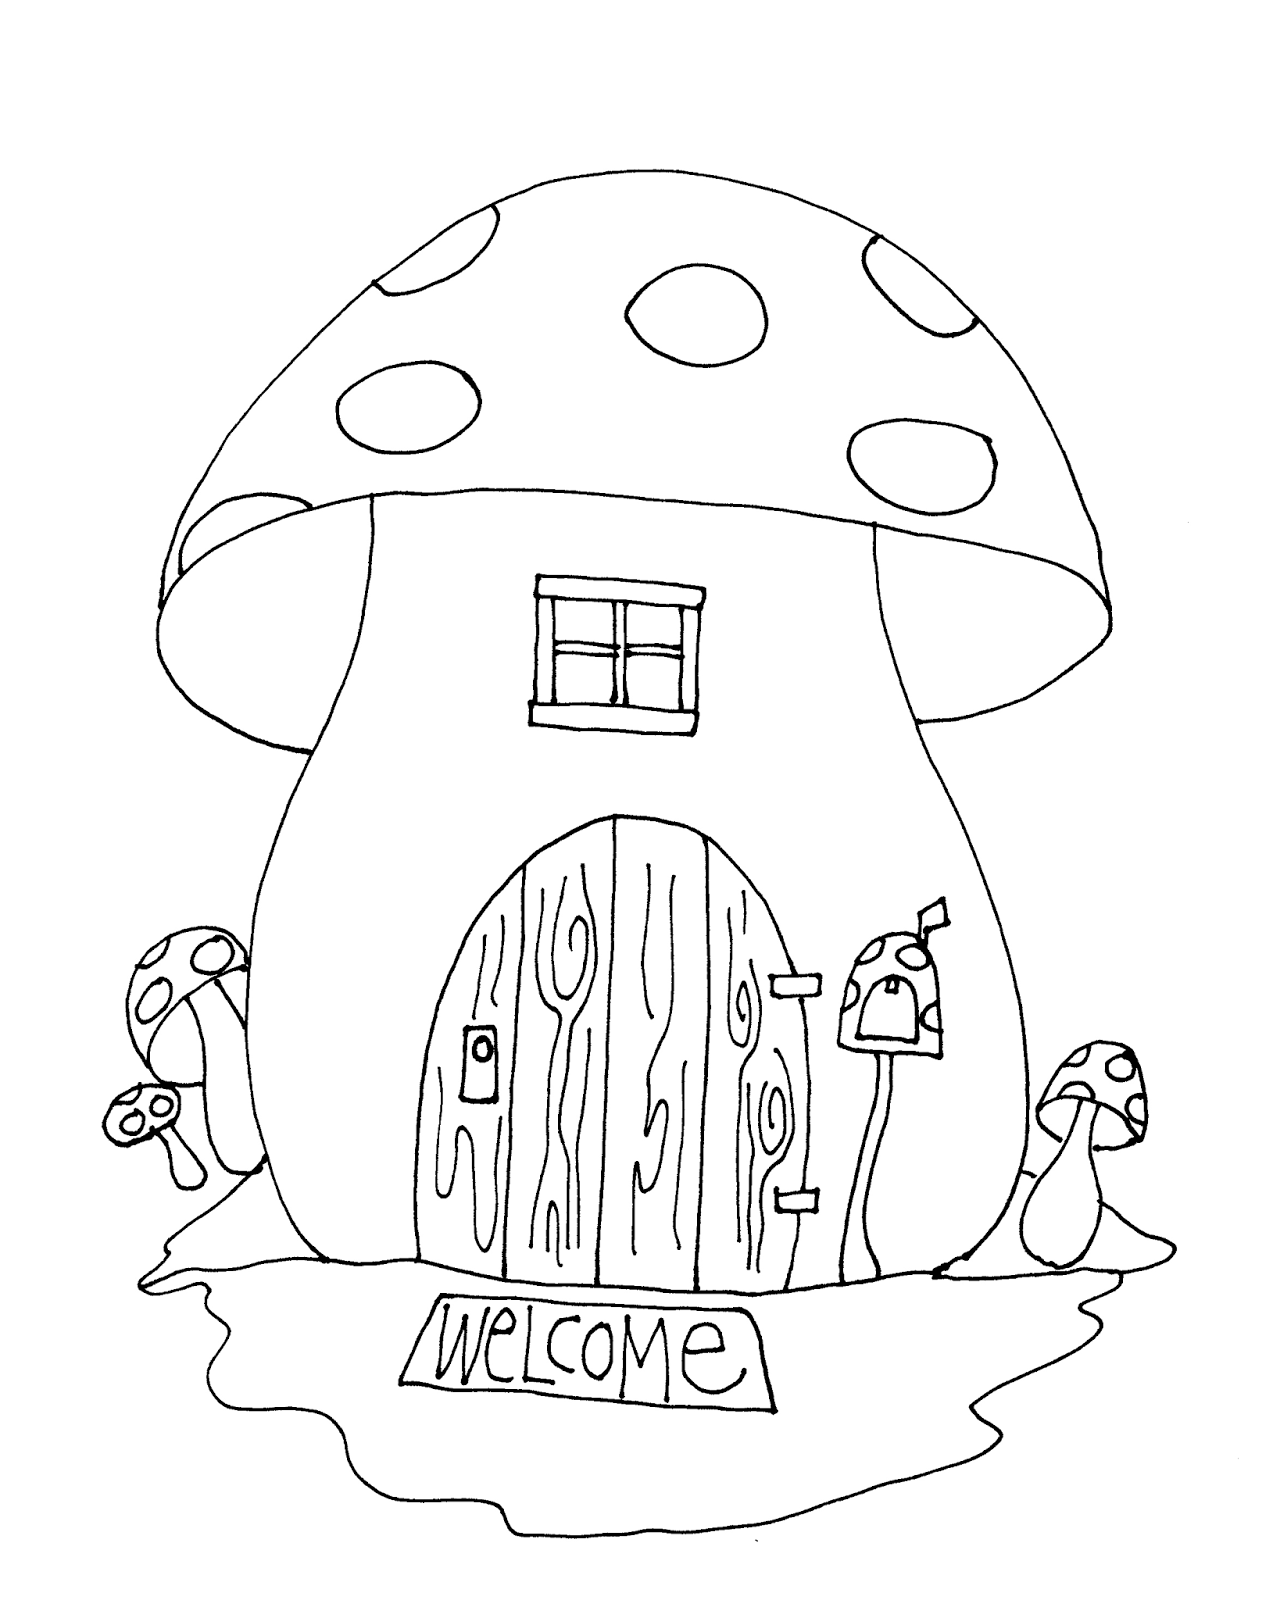 Free dearie dolls digi stamps mushroom house house colouring pages easy coloring pages